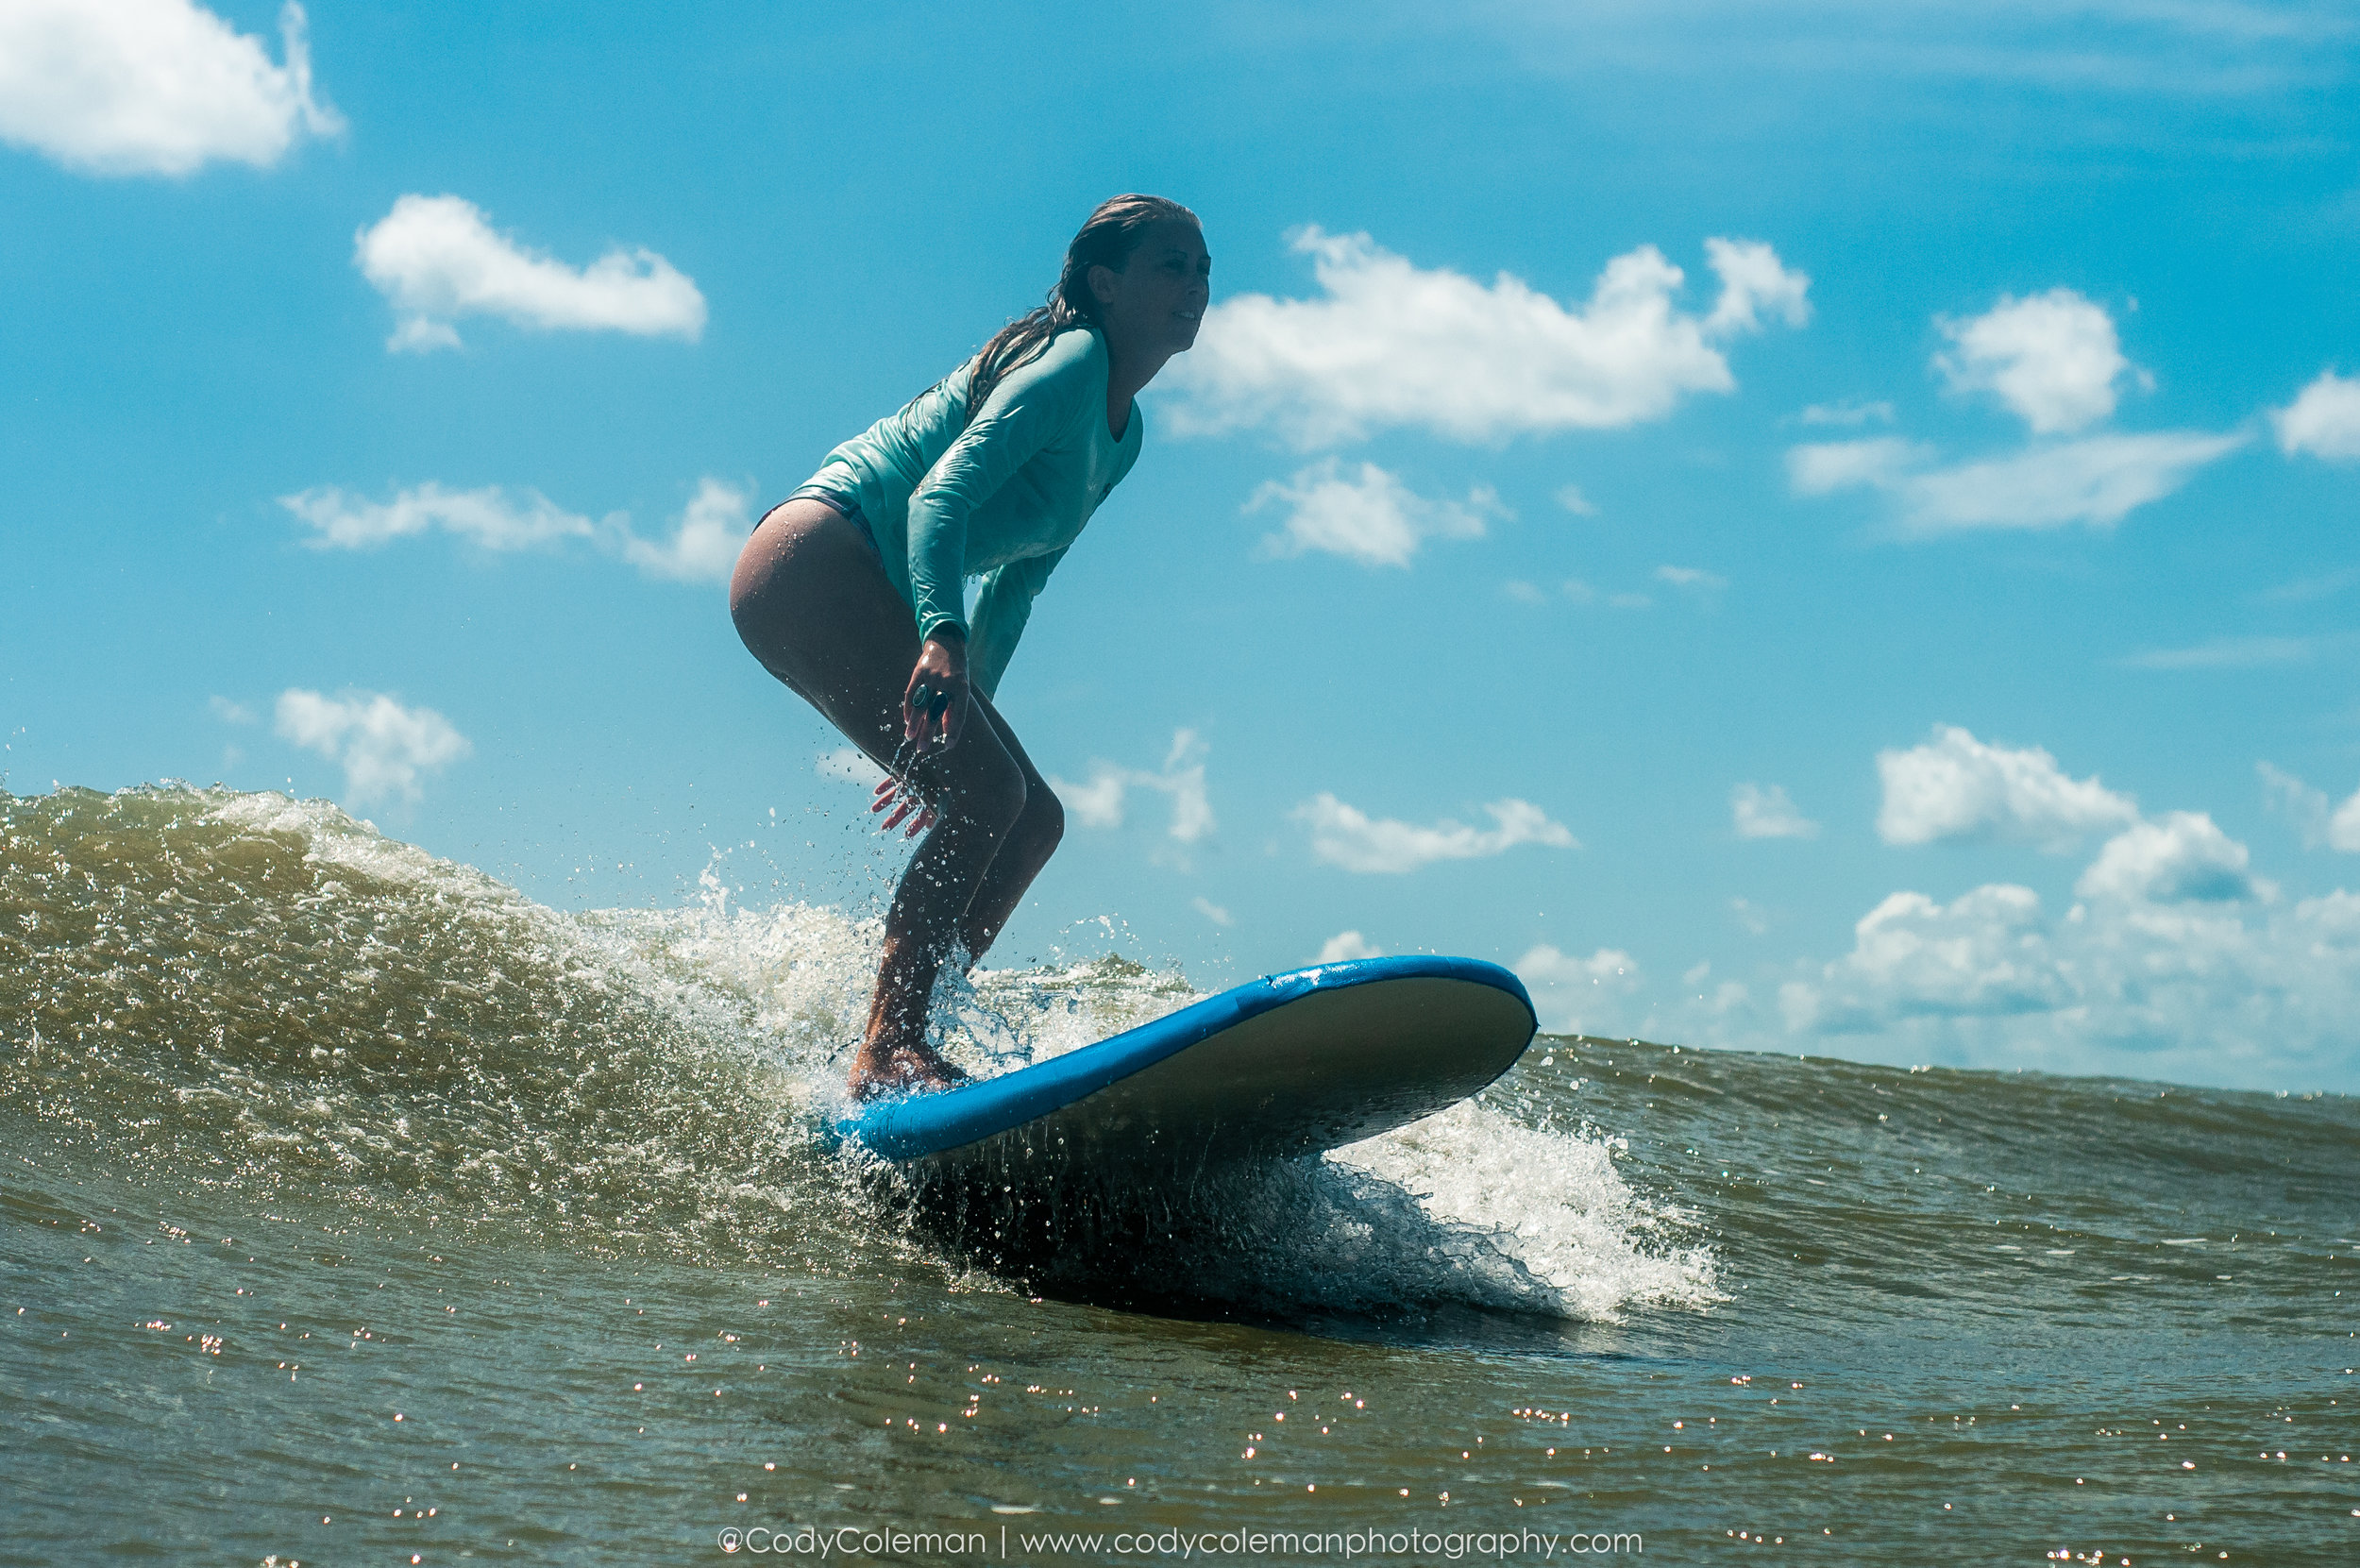 JOIN US FOR OUR POPULAR LADIES' SURF AND YOGA MORNINGS - DESIGNED FOR BEGINNER AND INTERMEDIATE SURFERS